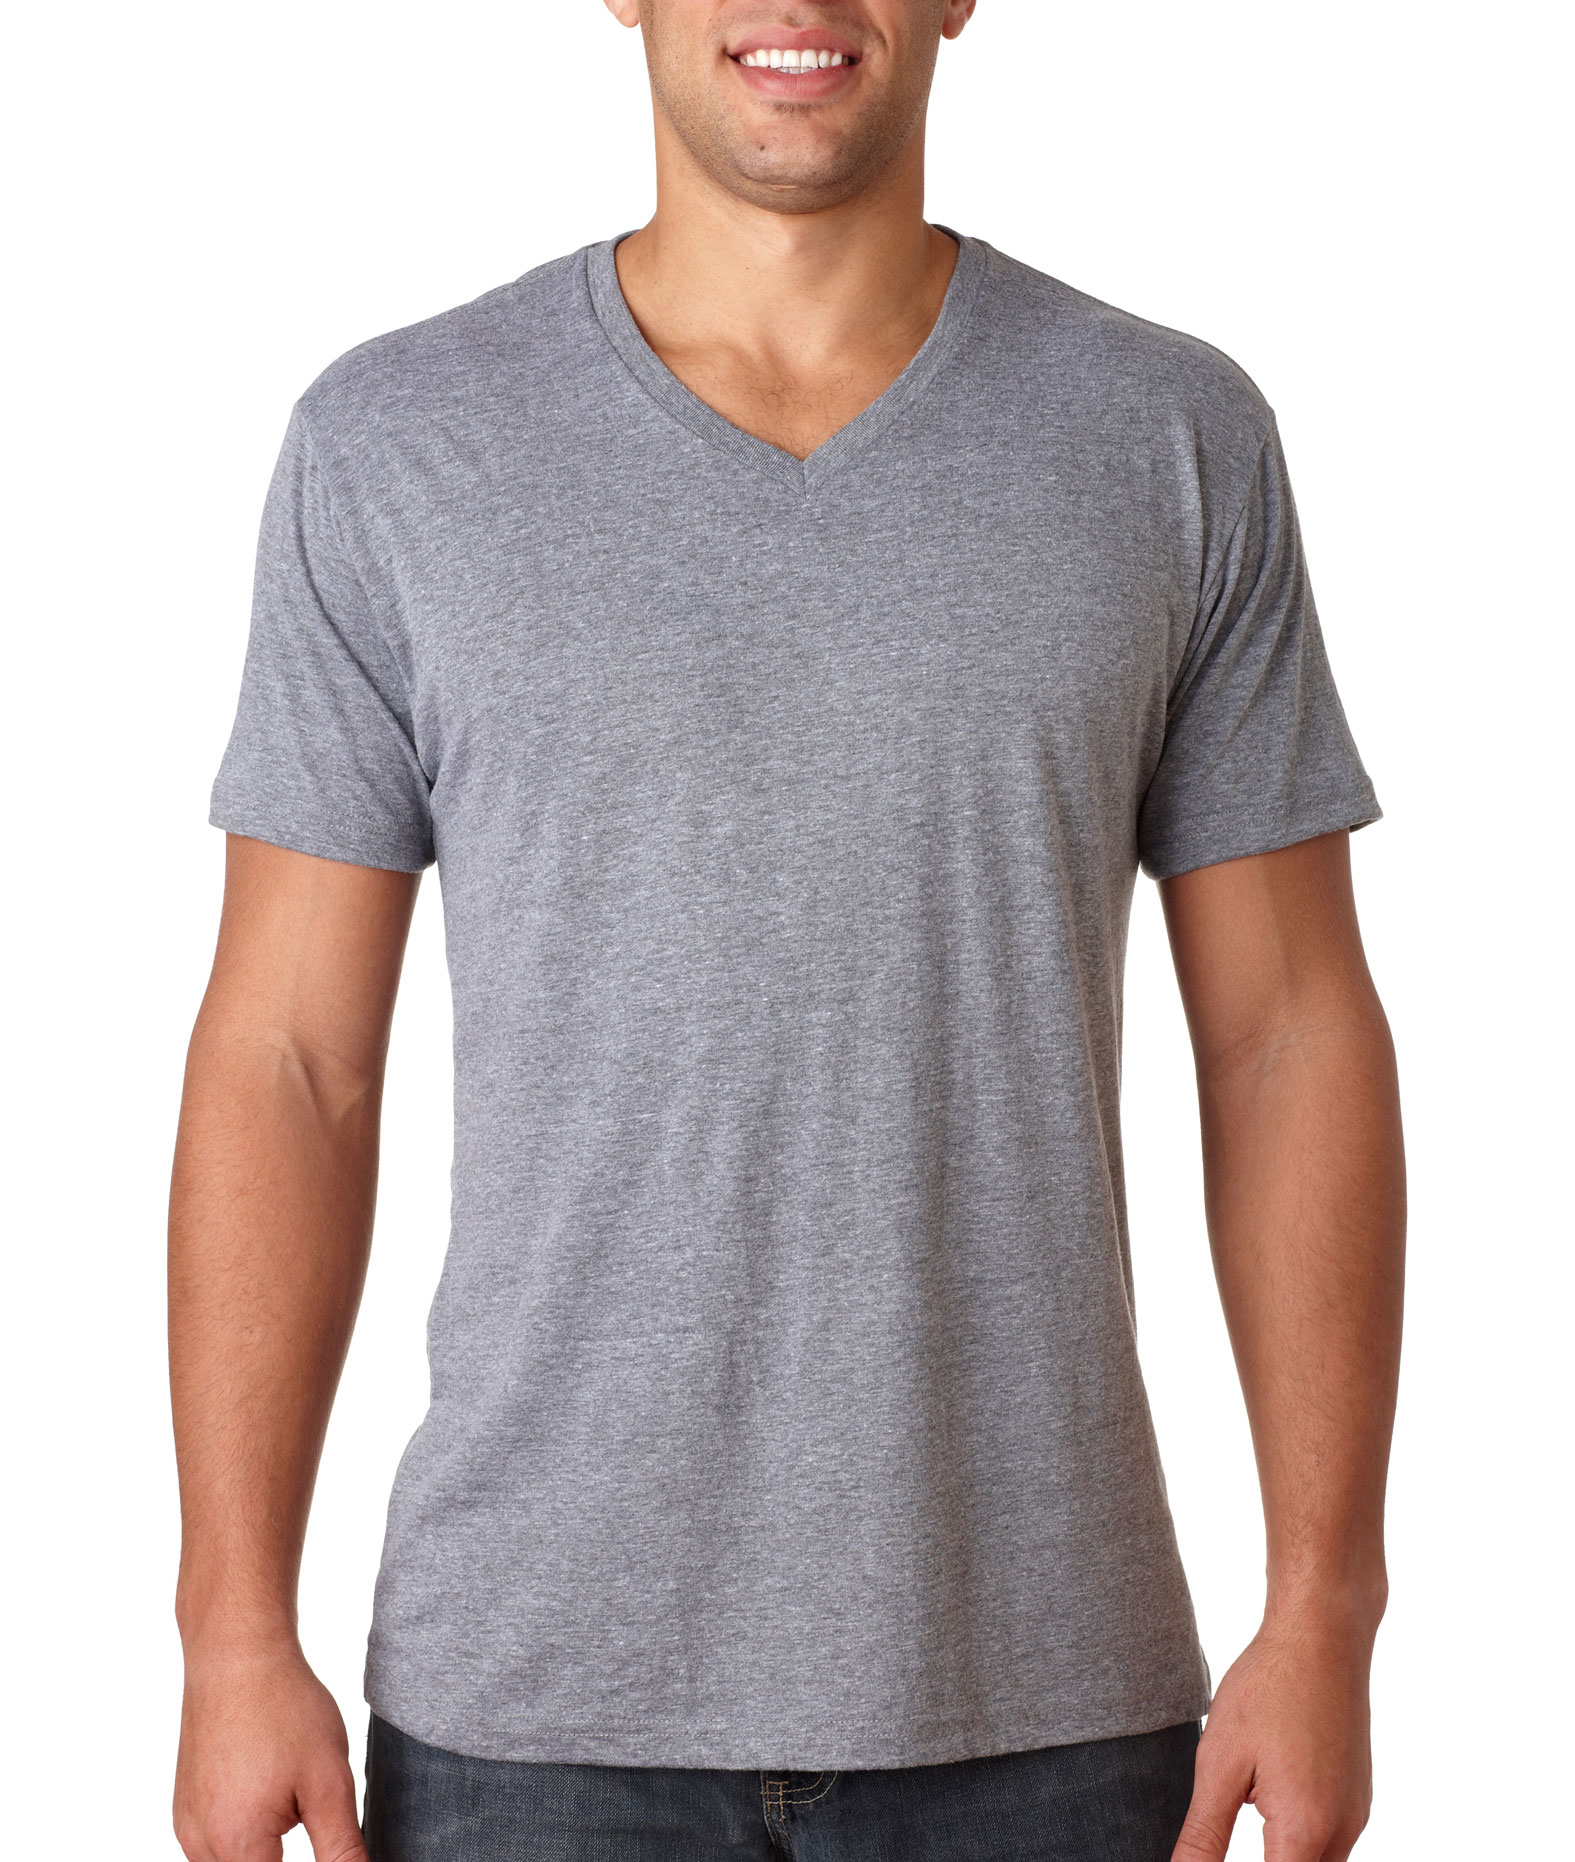 Next Level Tri-Blend V-Neck